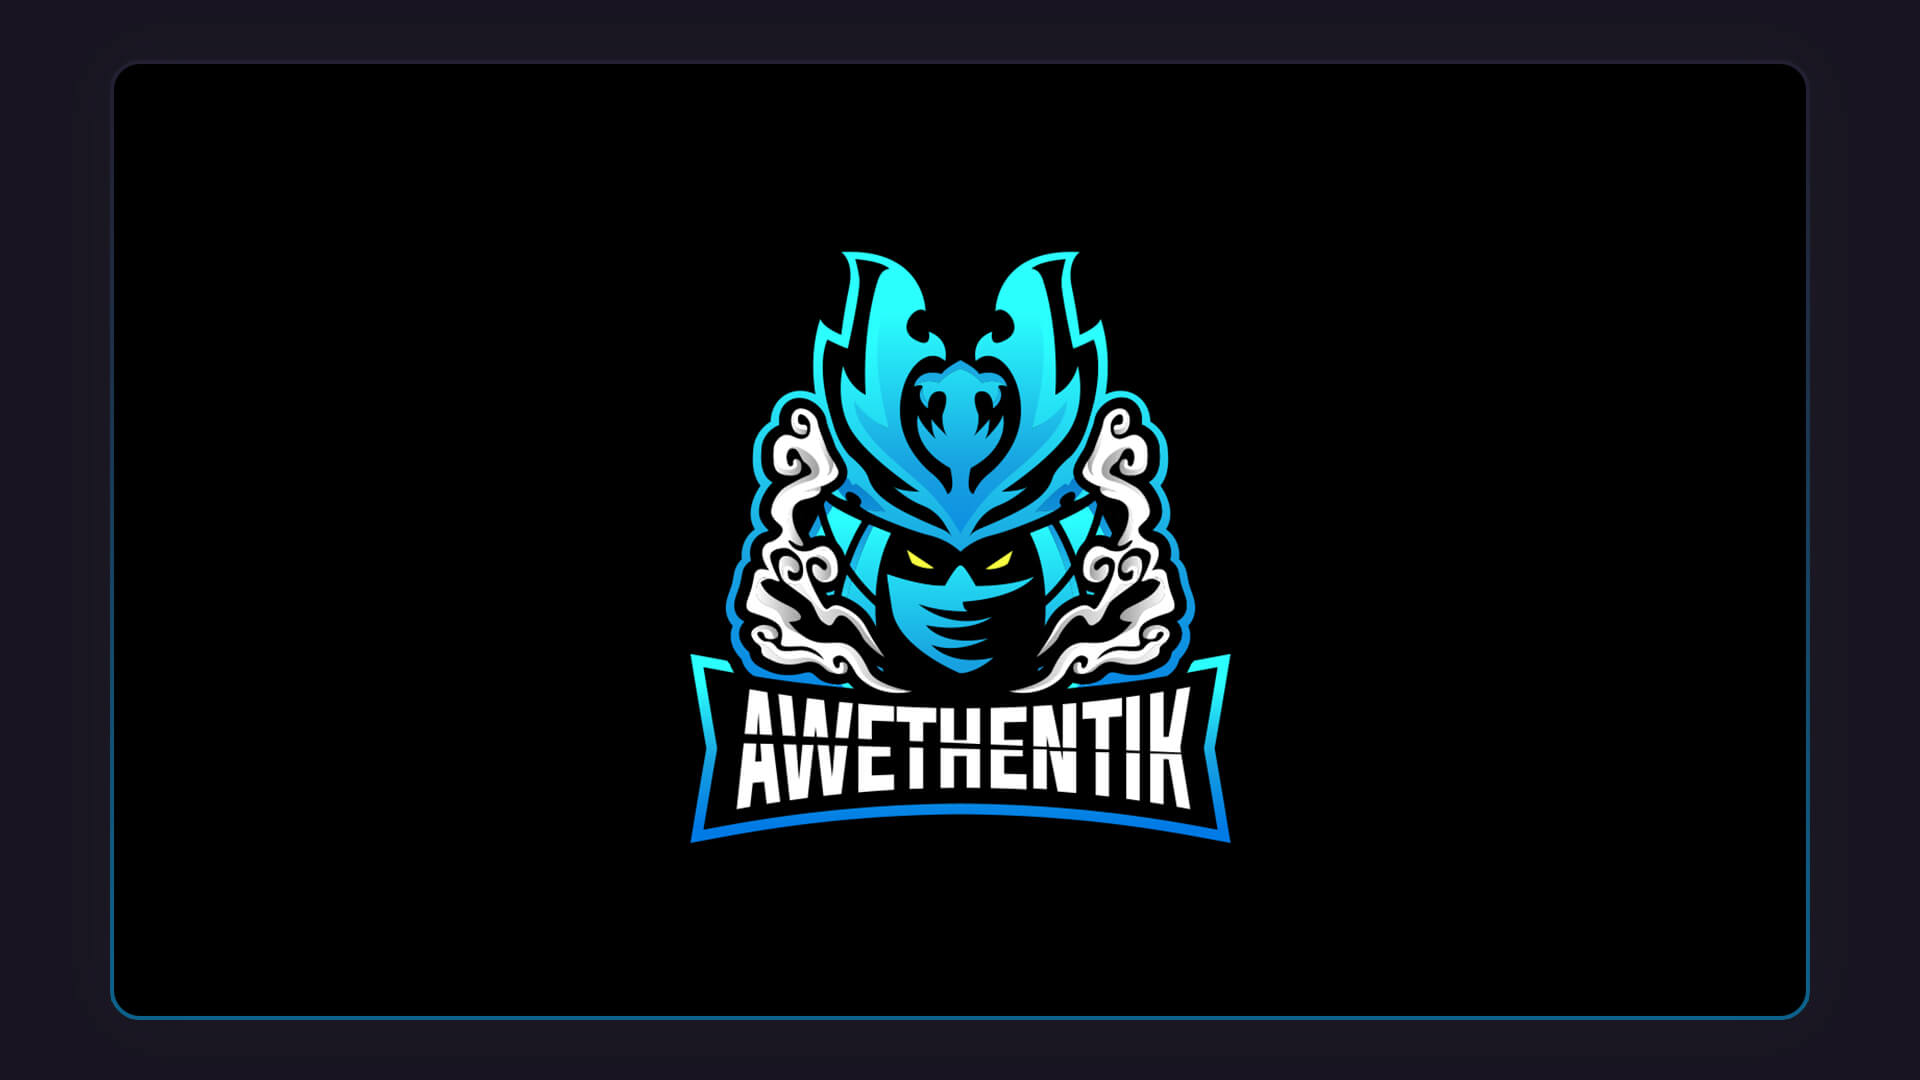 Awethentik custom stream design esports logos